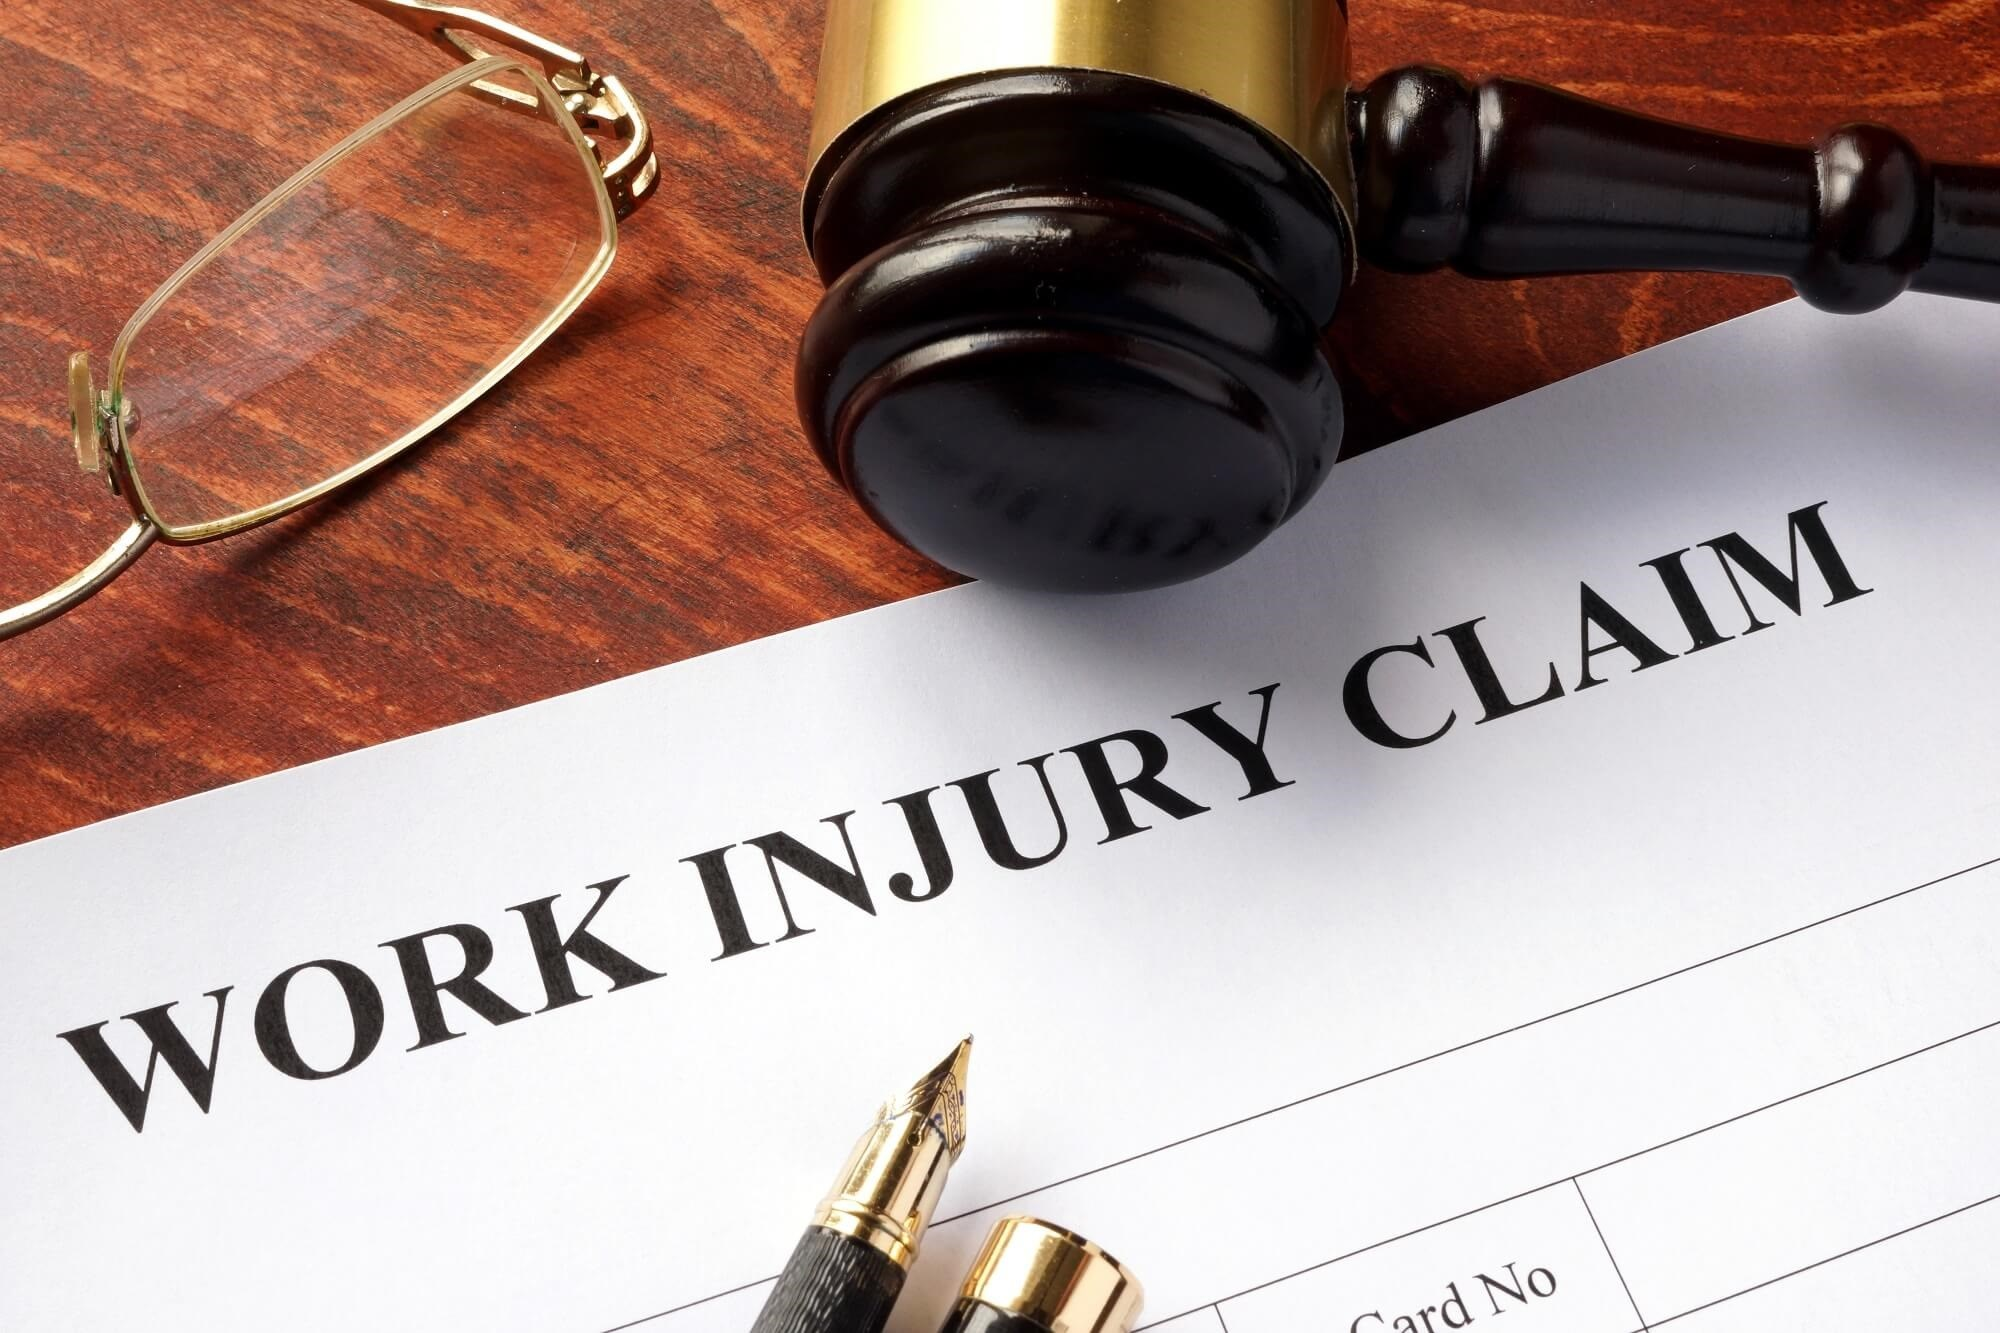 Opioid Use Often Persists in Workers' Compensation Claimants